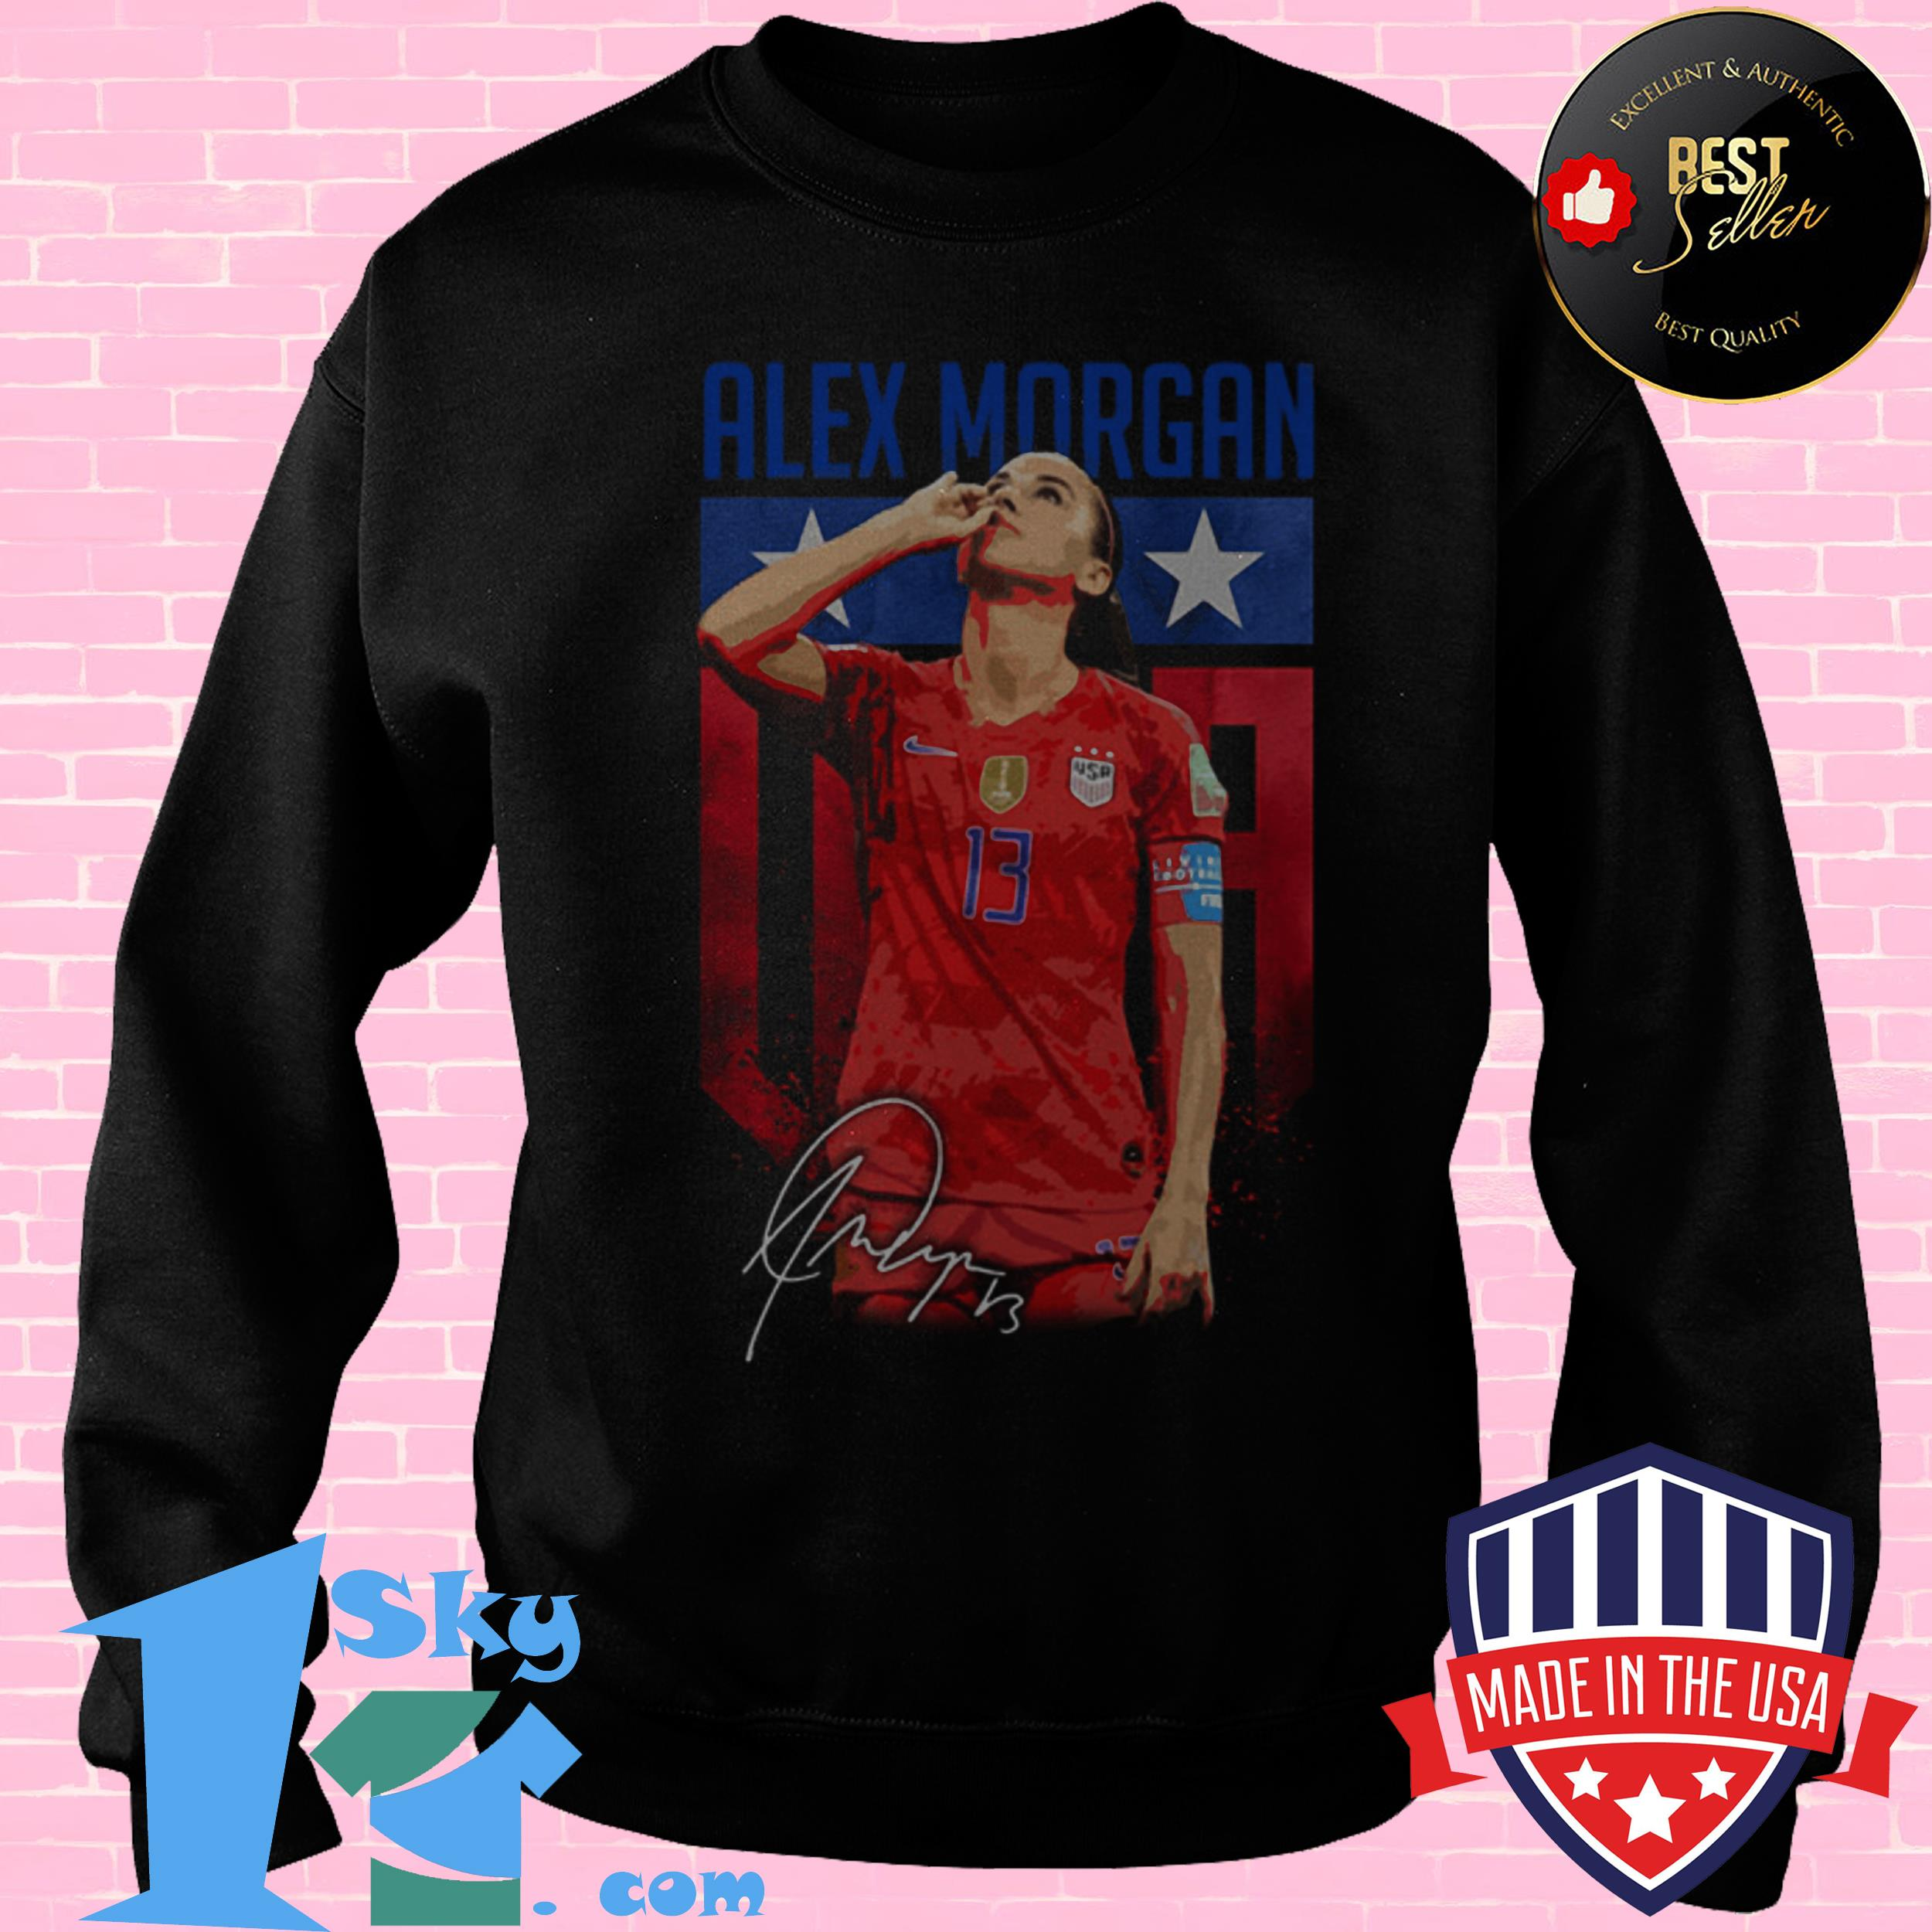 alex morgan sipping tea signature sweatshirt - Alex Morgan Sipping Tea Signature shirt